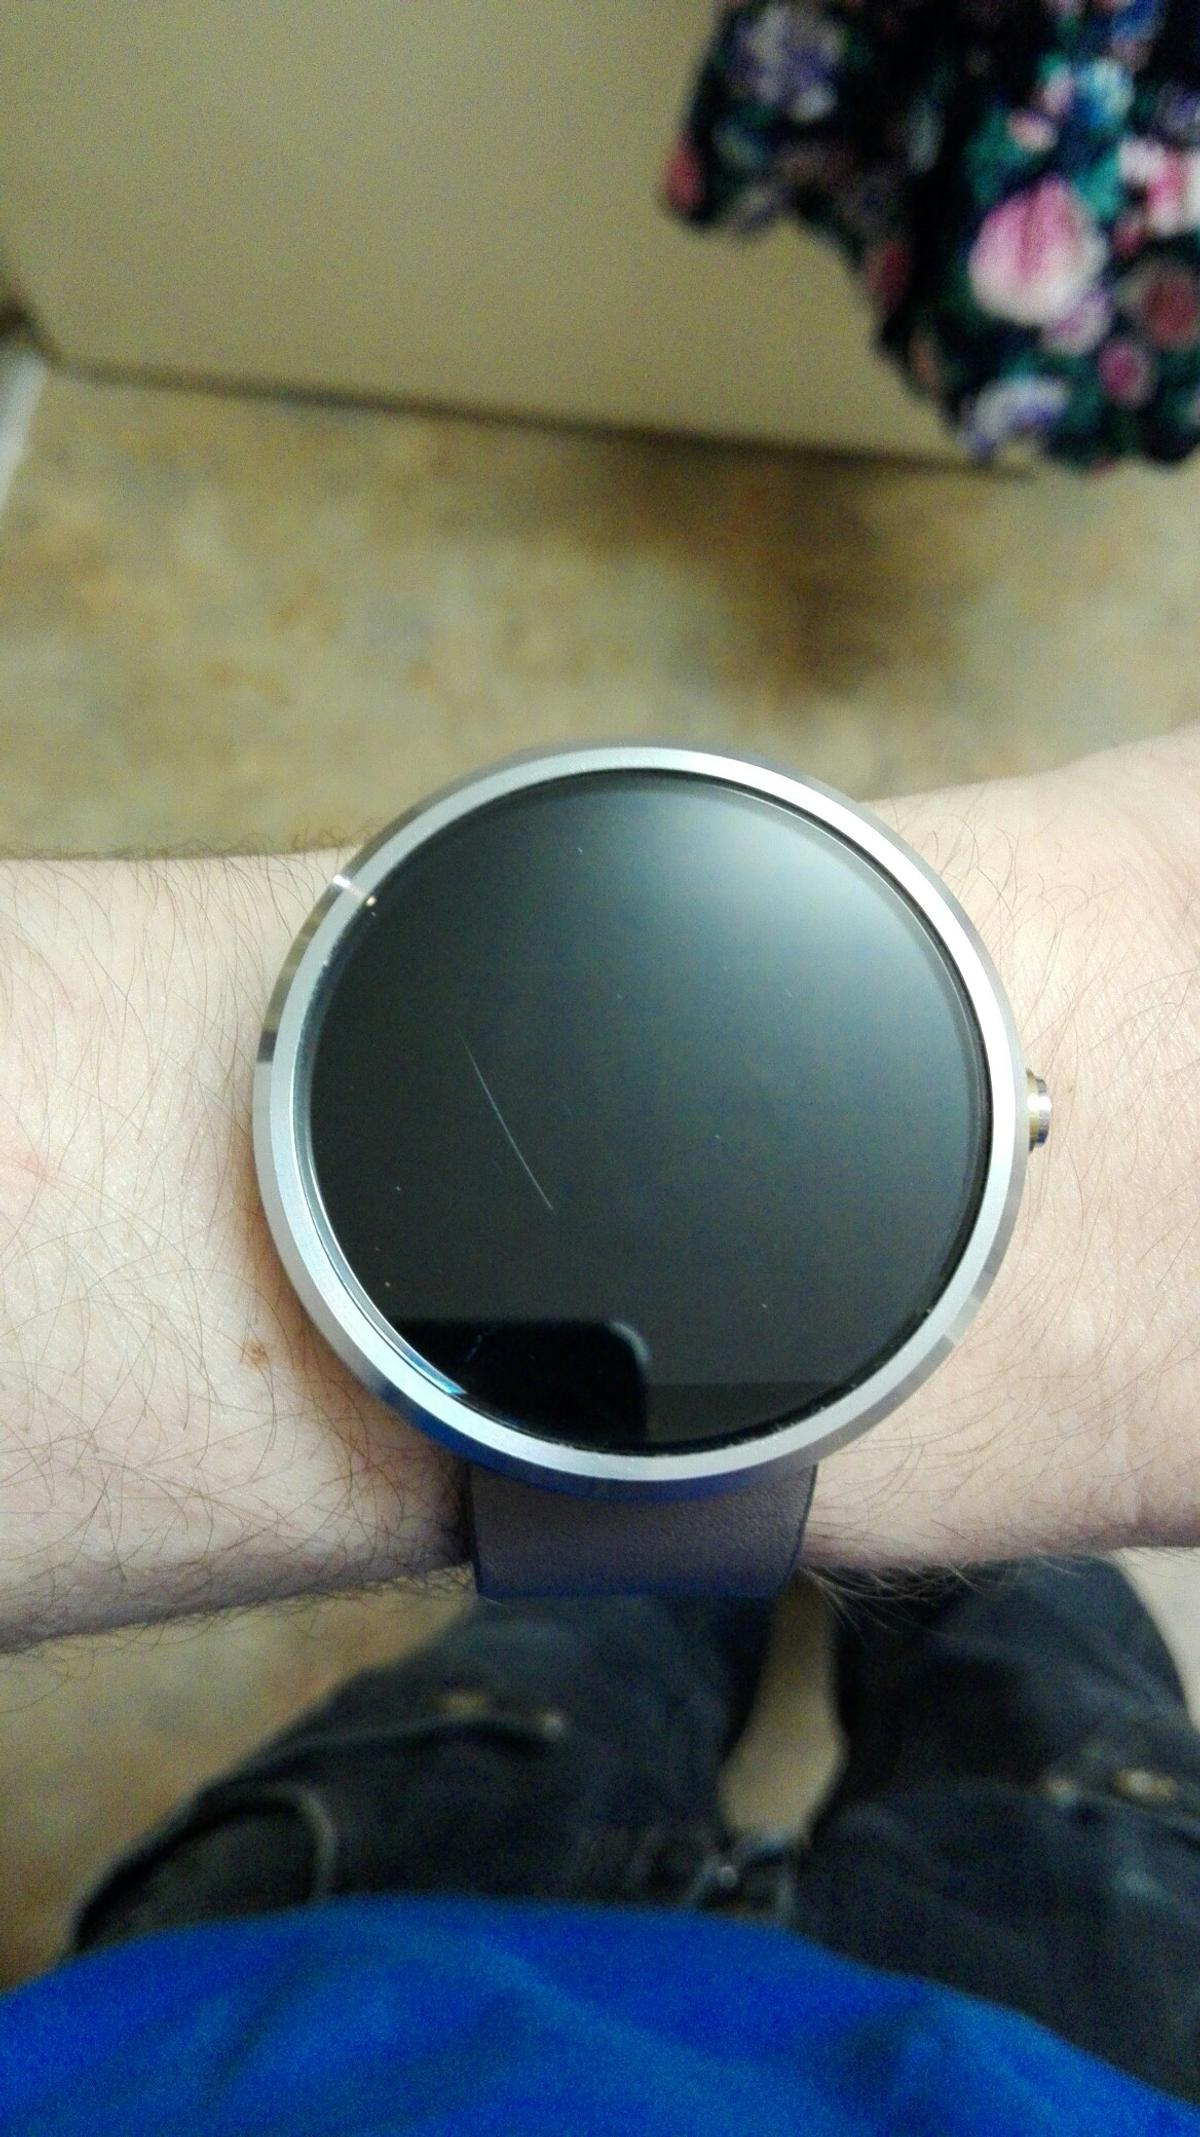 Moto 360 smart watch in M25 Bury for £50 00 for sale - Shpock